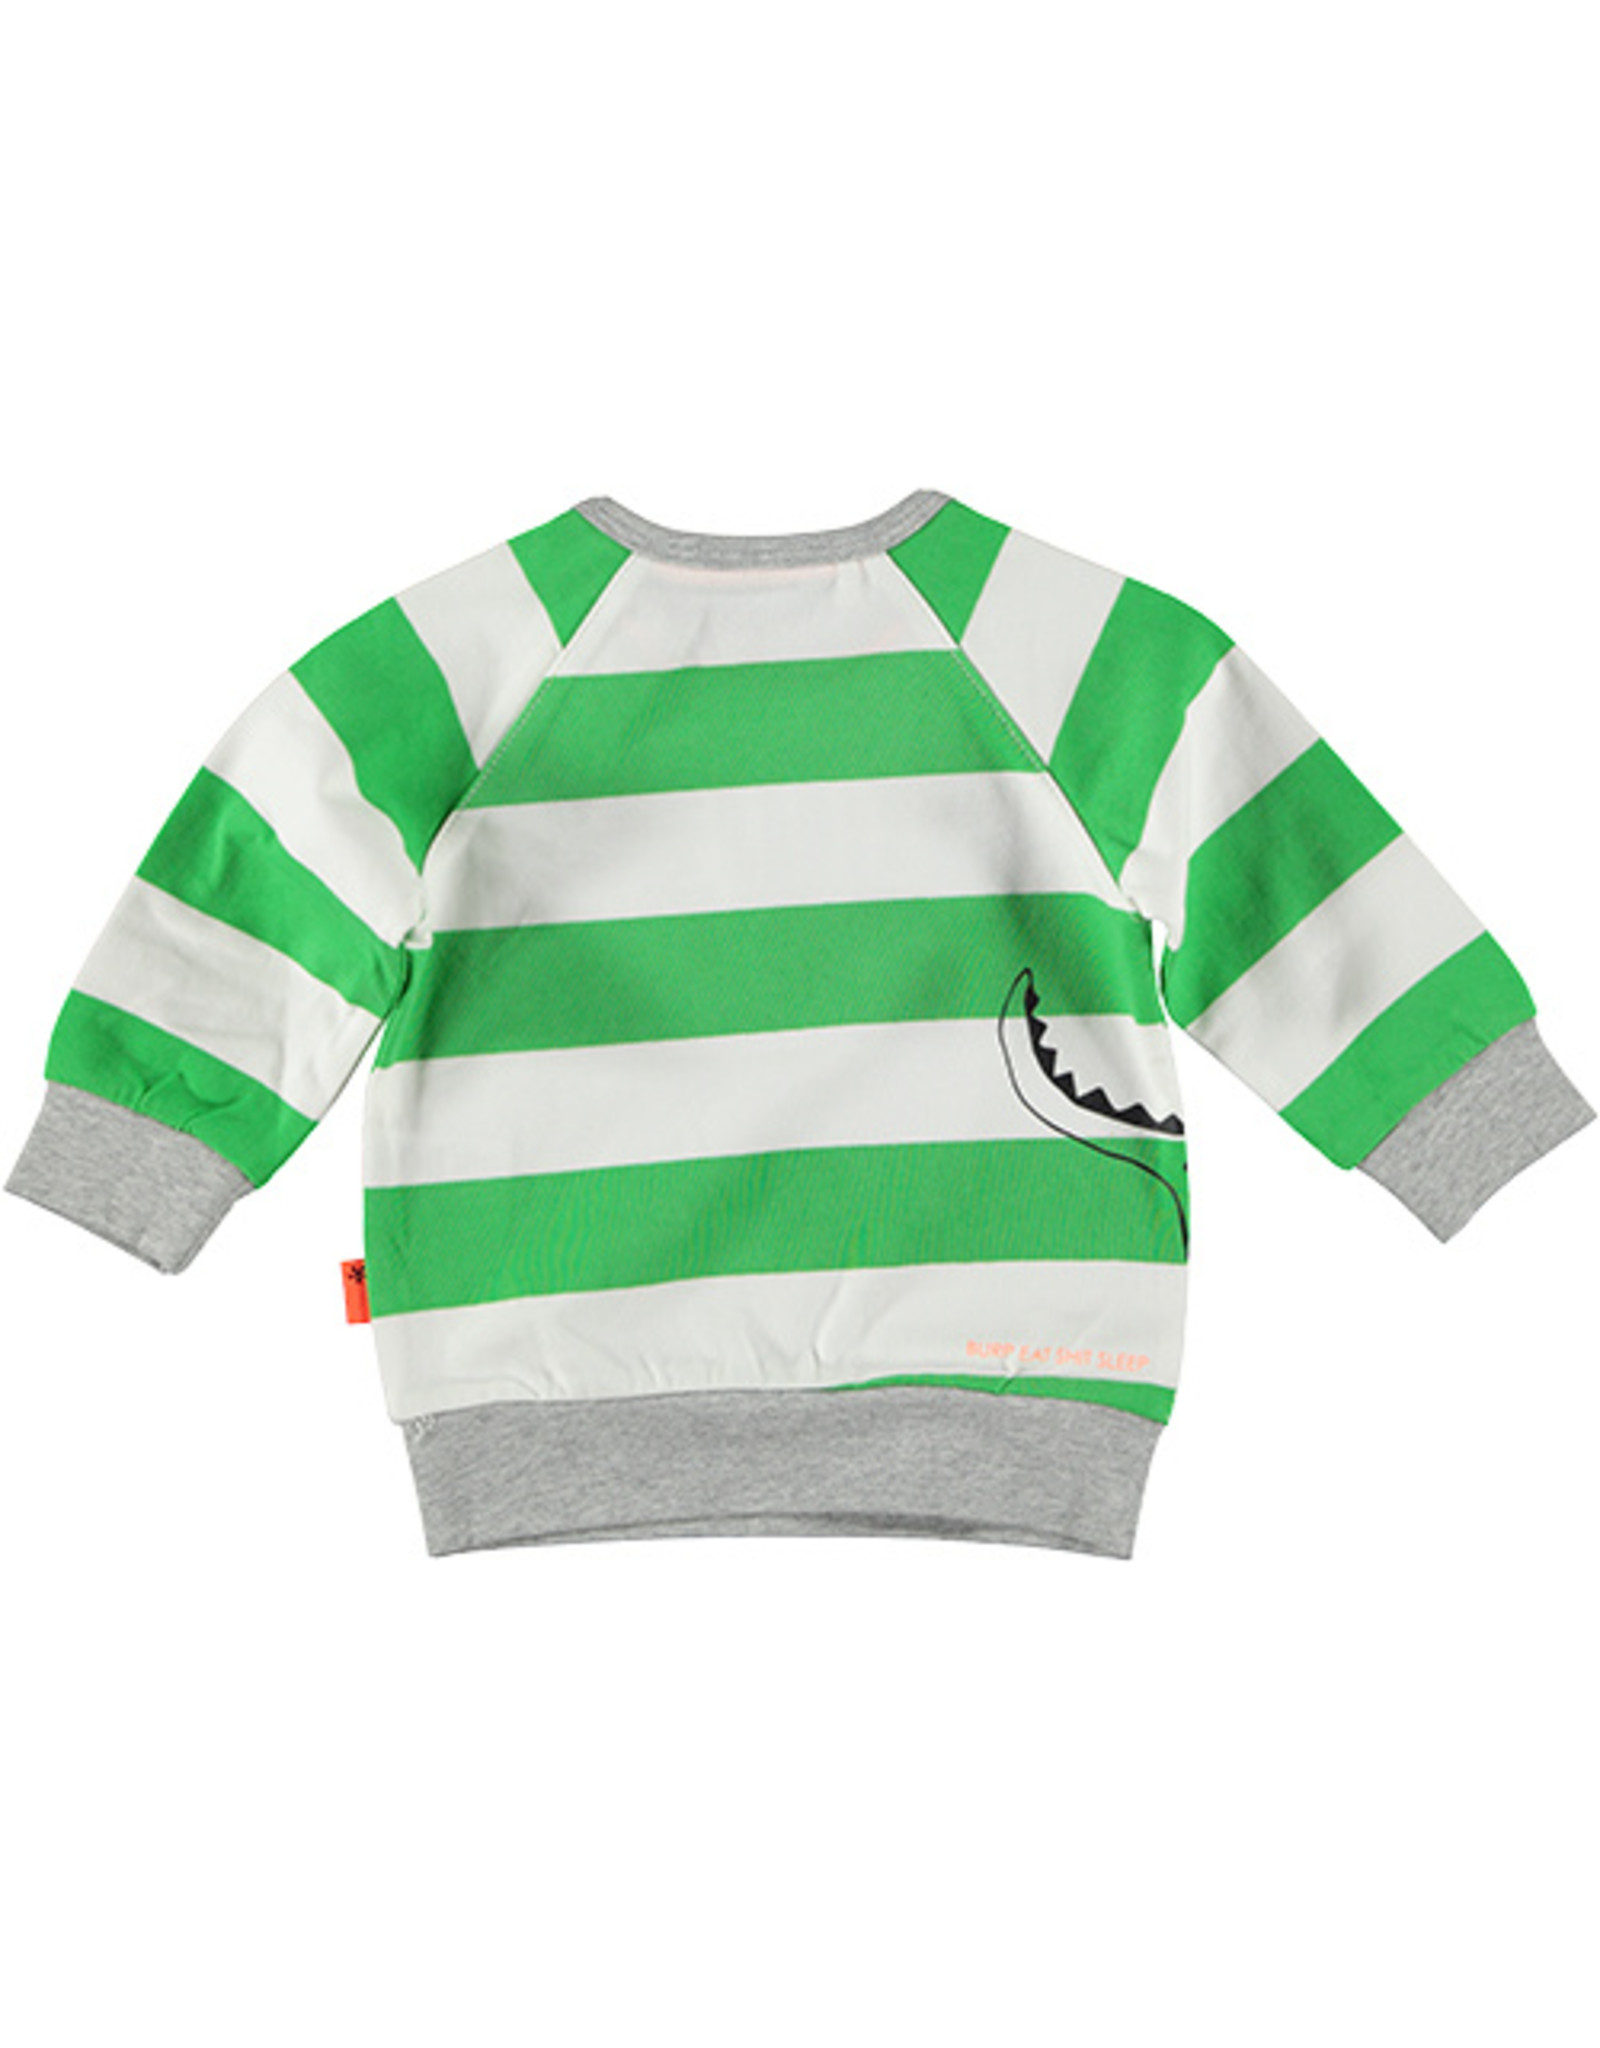 B.E.S.S. Sweater Little Messmaker, White